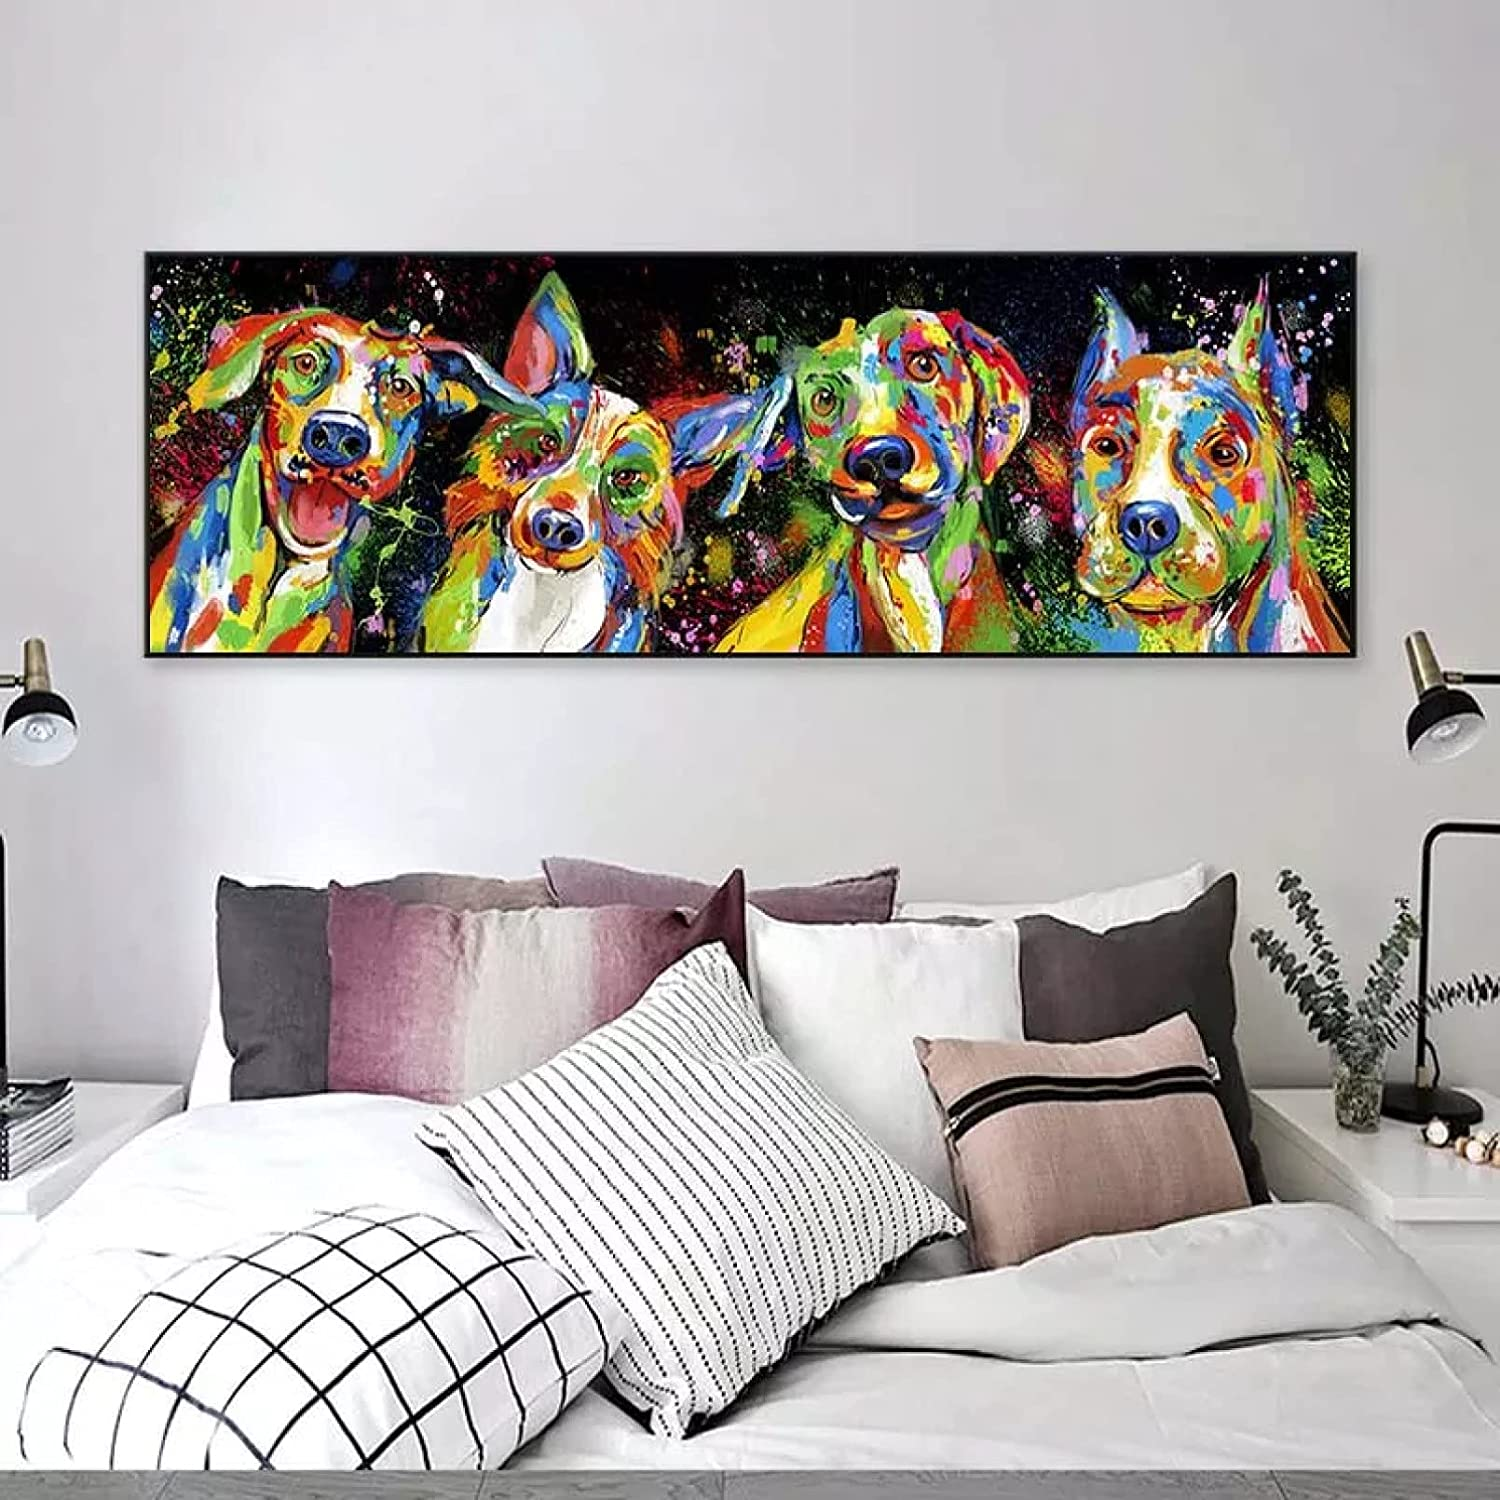 Topics on TV TDPYT Home Canvas Decorative Painting Abstract Art Max 67% OFF Canva Animals